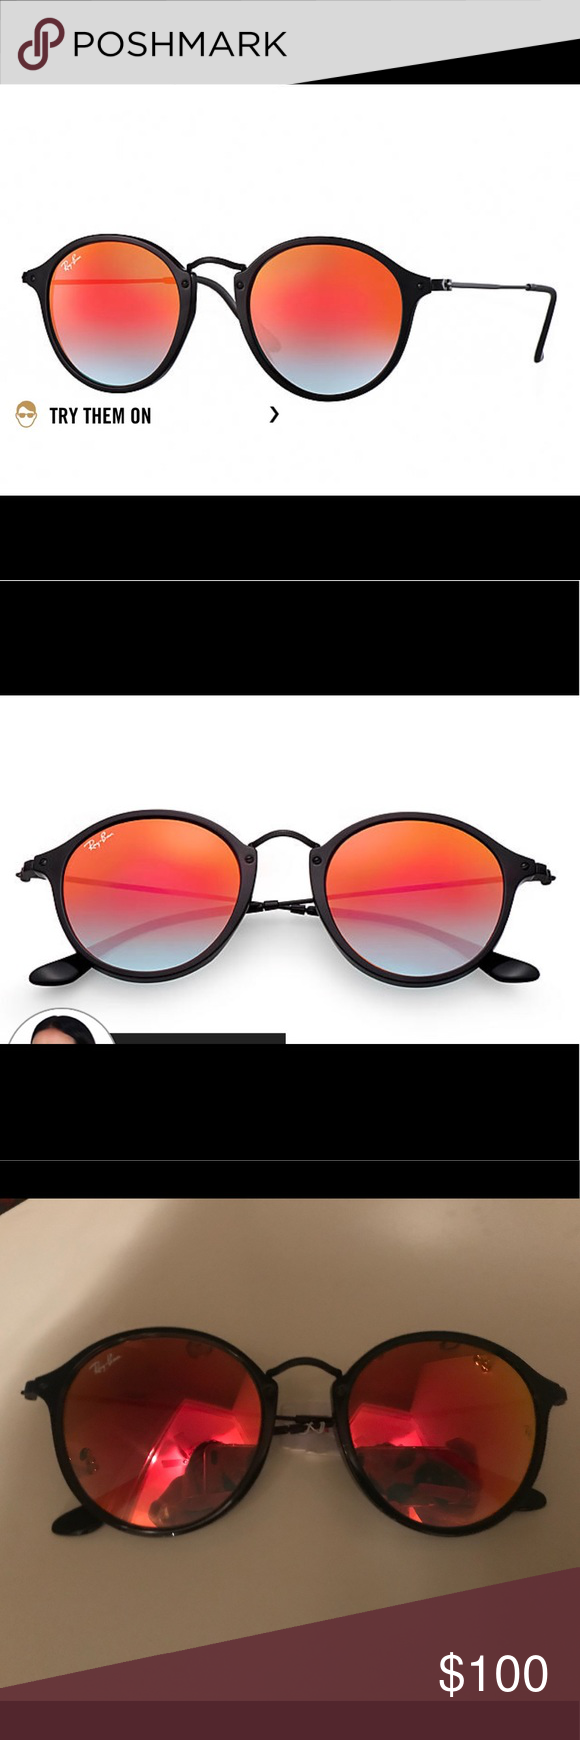 7d19e588866 NWT RAY-BAN  ROUND FLECK FLASH LENSES GRADIENT NEW WITH TAGS  RAY ...